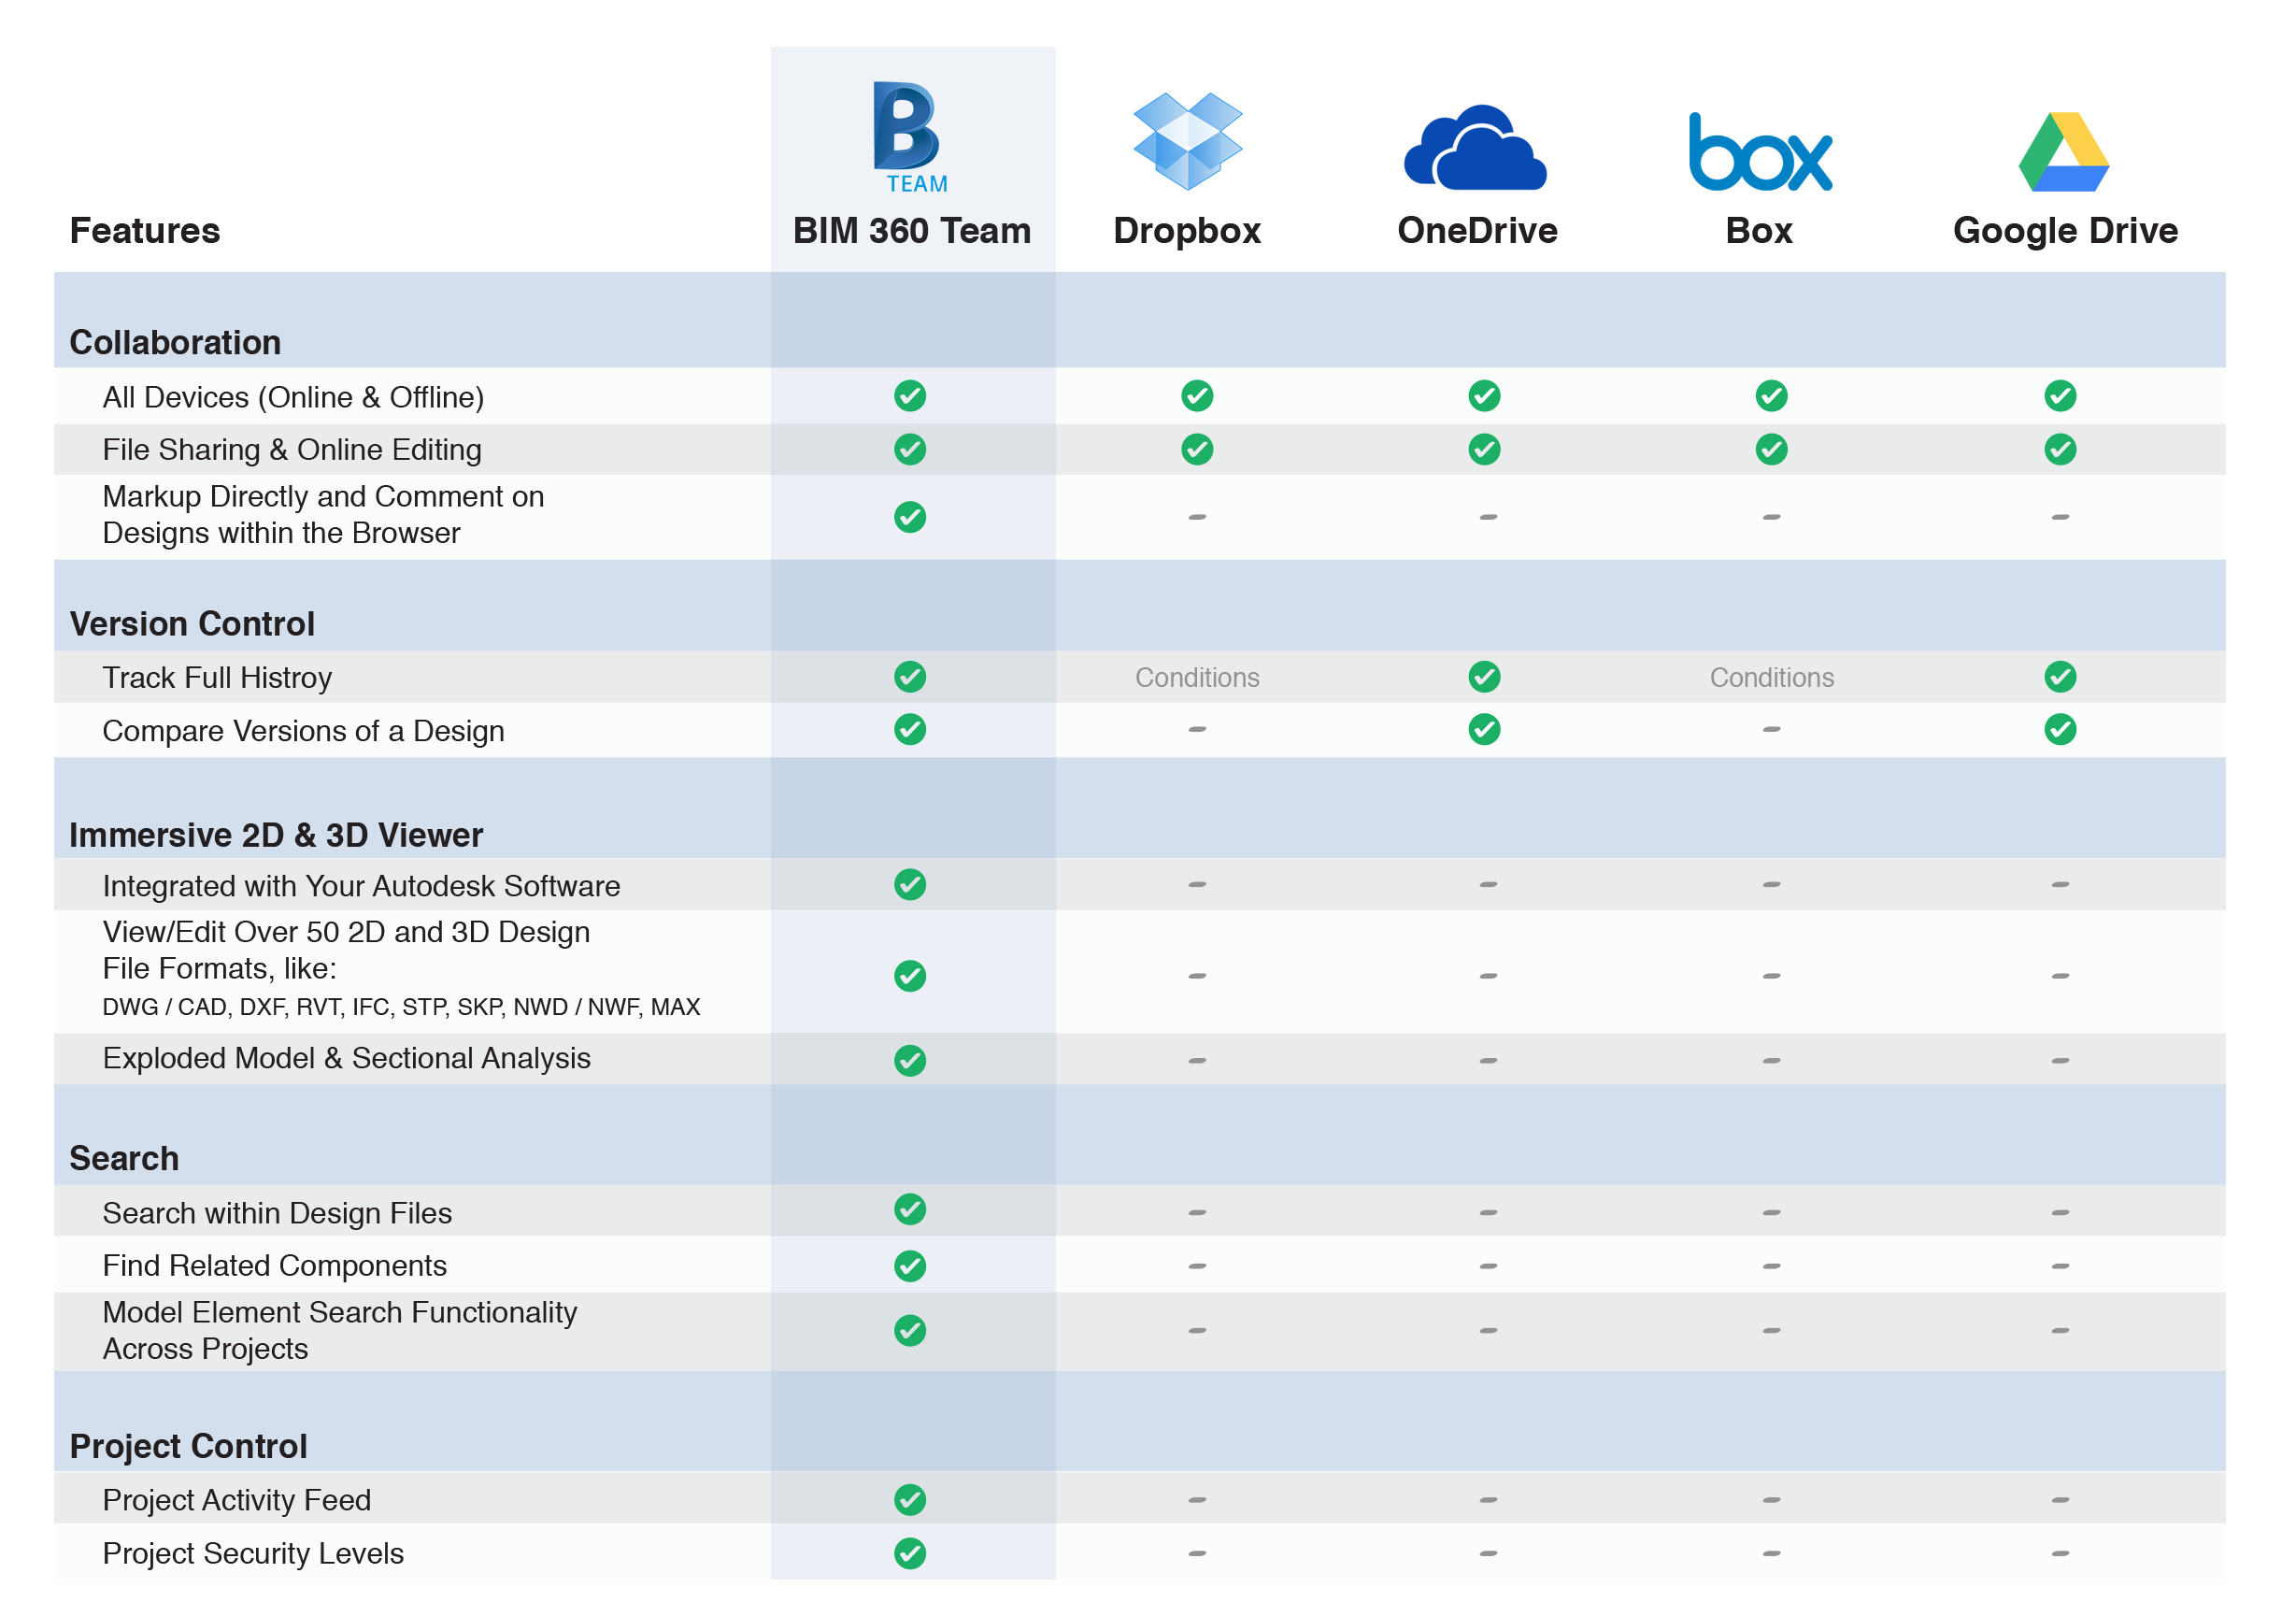 Dropbox vs OneDrive vs Box vs Google Drive vs BIM 360 Team